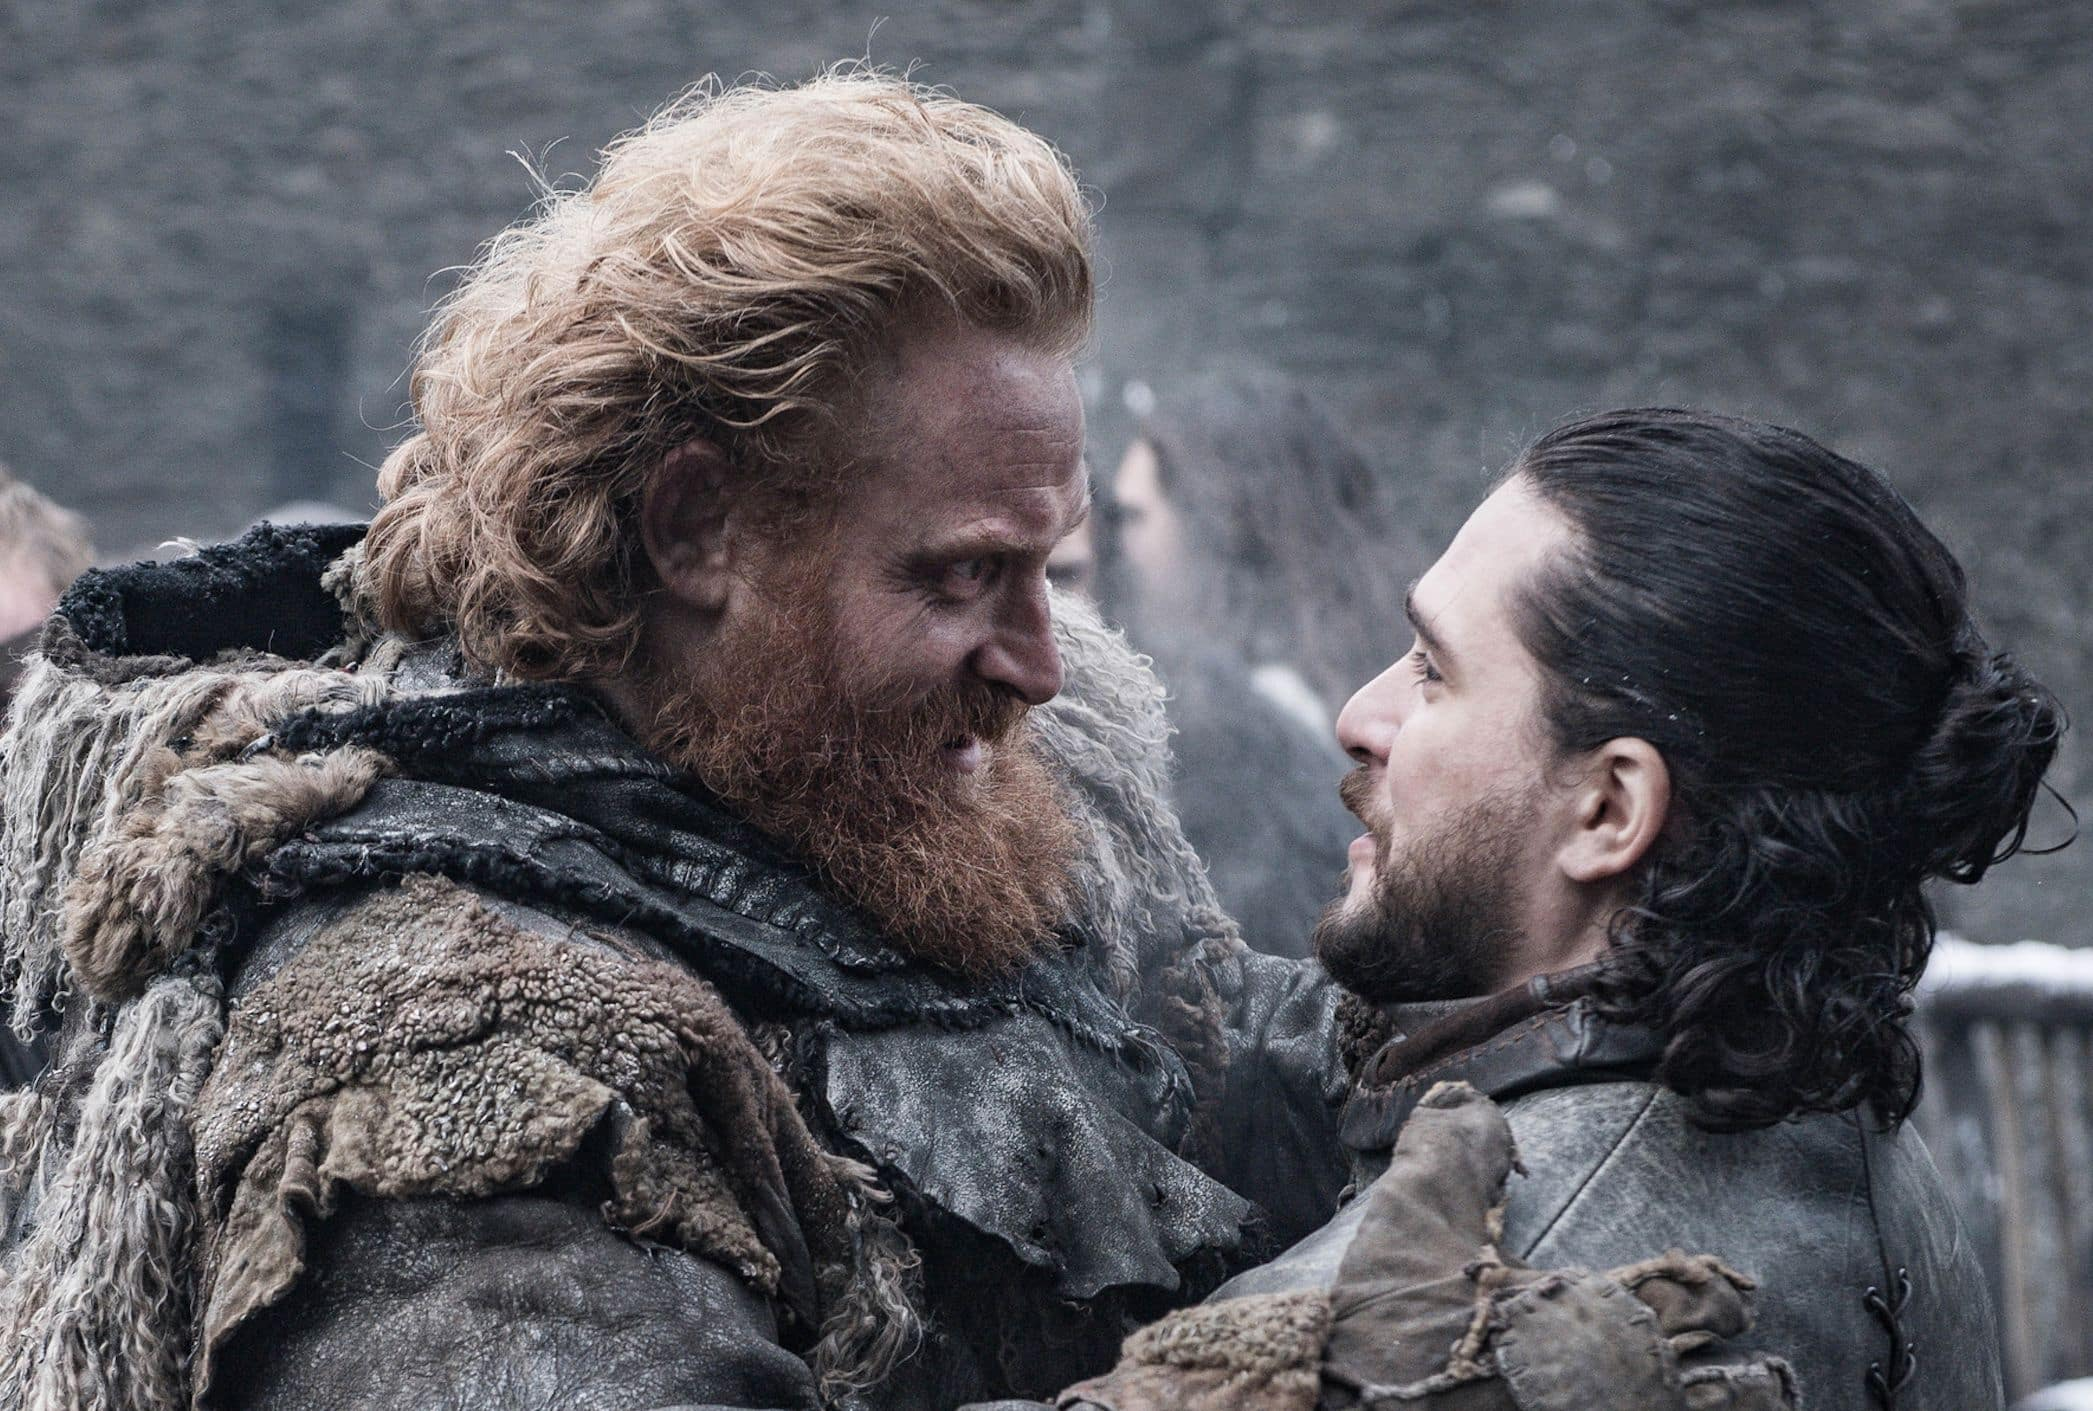 Games Of Thrones Cast Shot An Alternate Ending Reveals Kristofer Hivju, The Fans May Never Get To Know What It Is